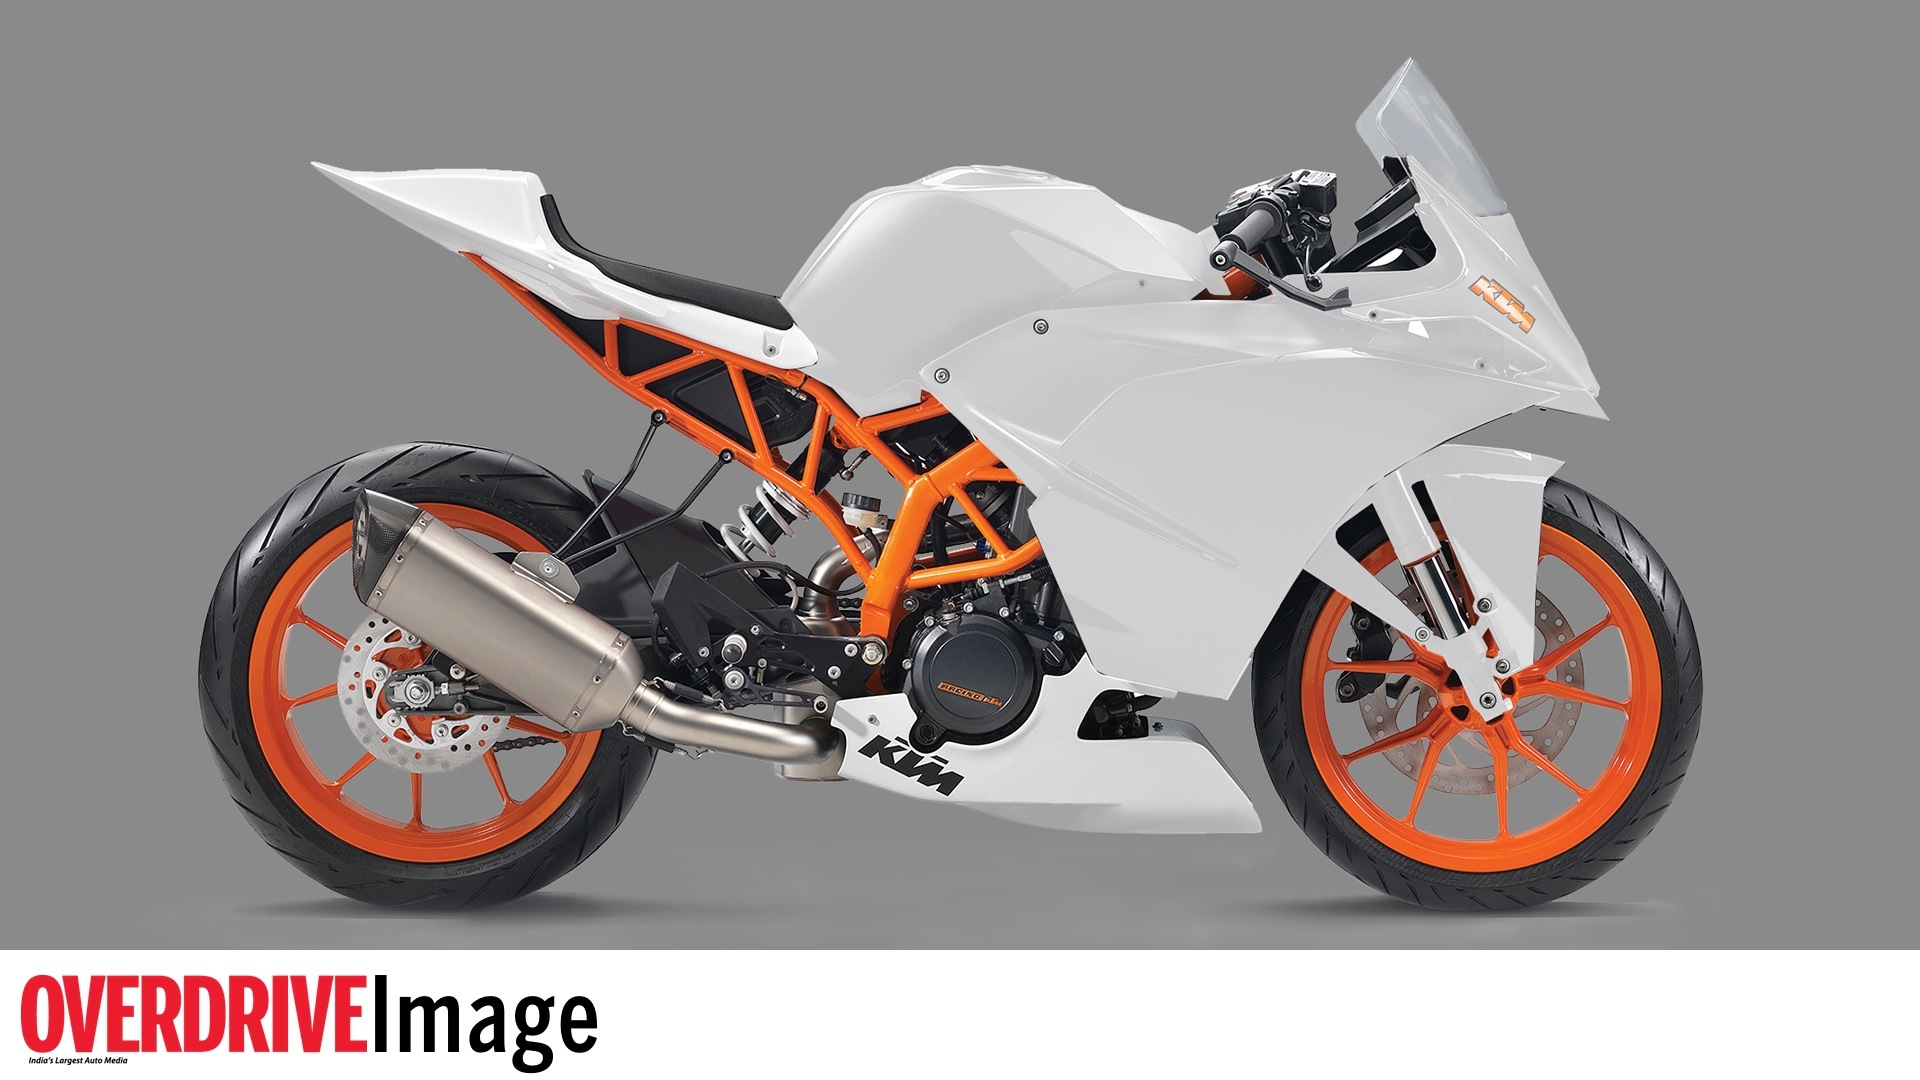 ktm set to launch rc125, 200 and 390 | visordown